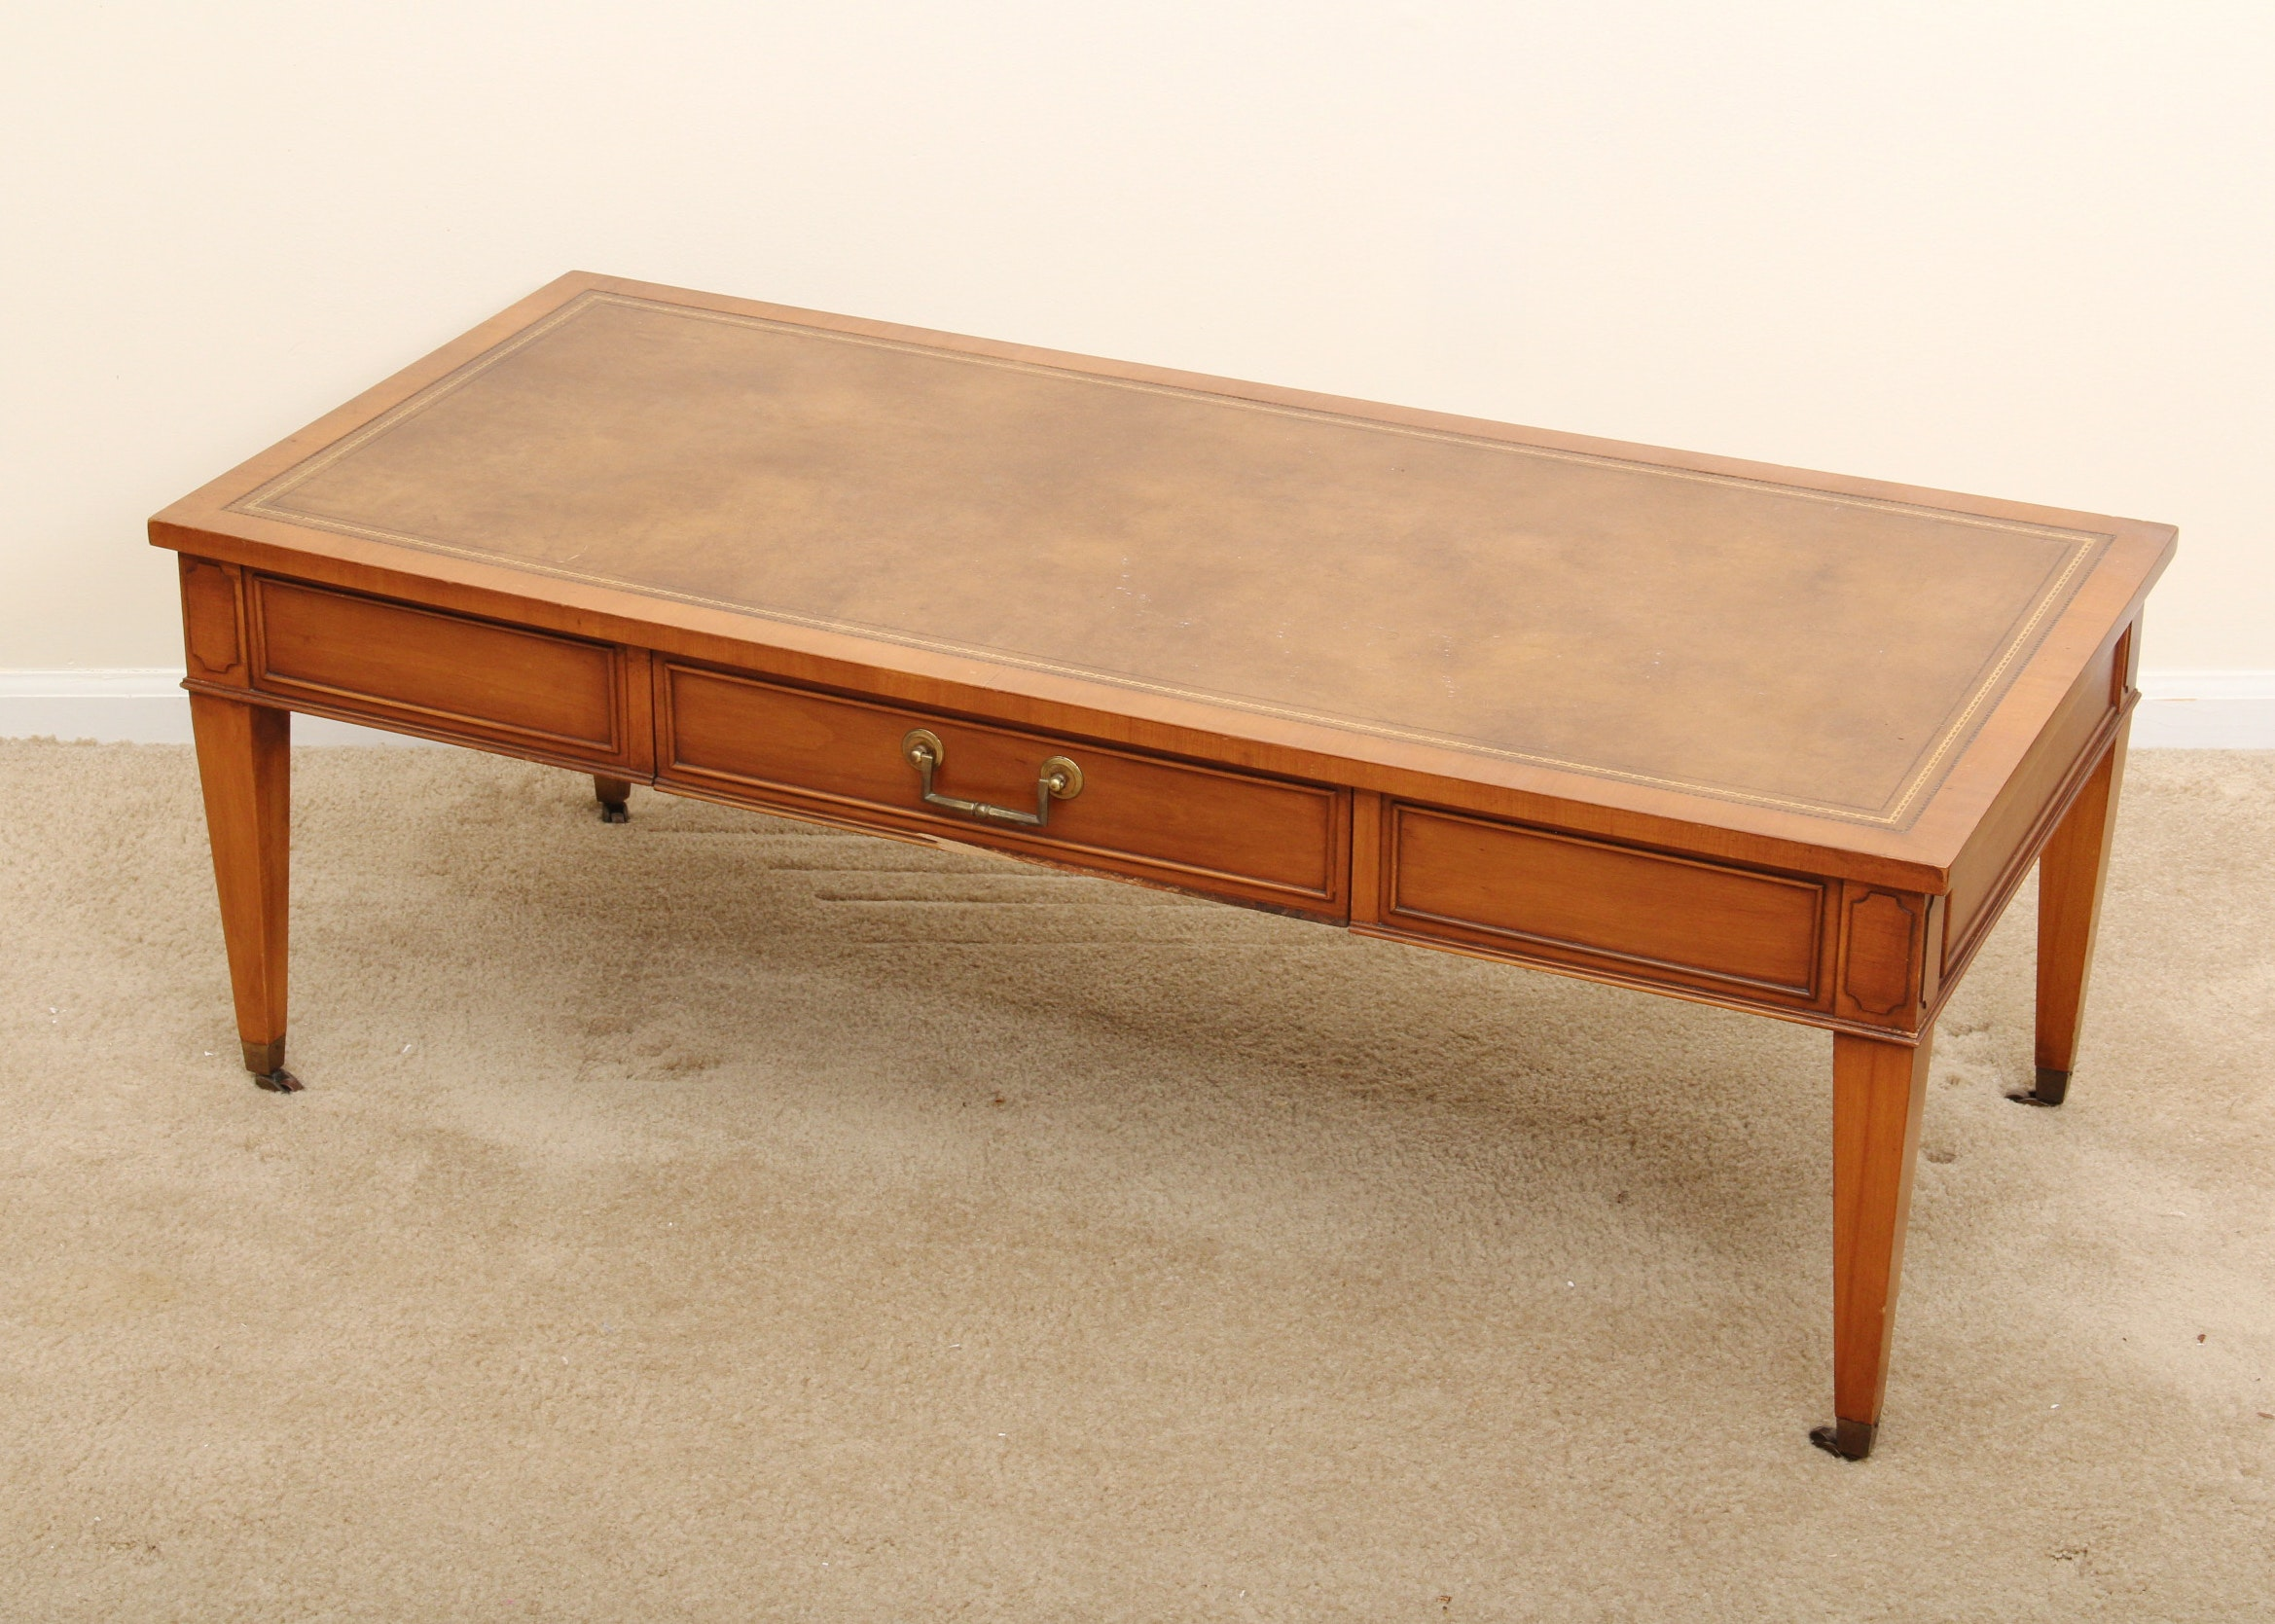 Delicieux Vintage Hekman Furniture Leather Inlay Coffee Table ...